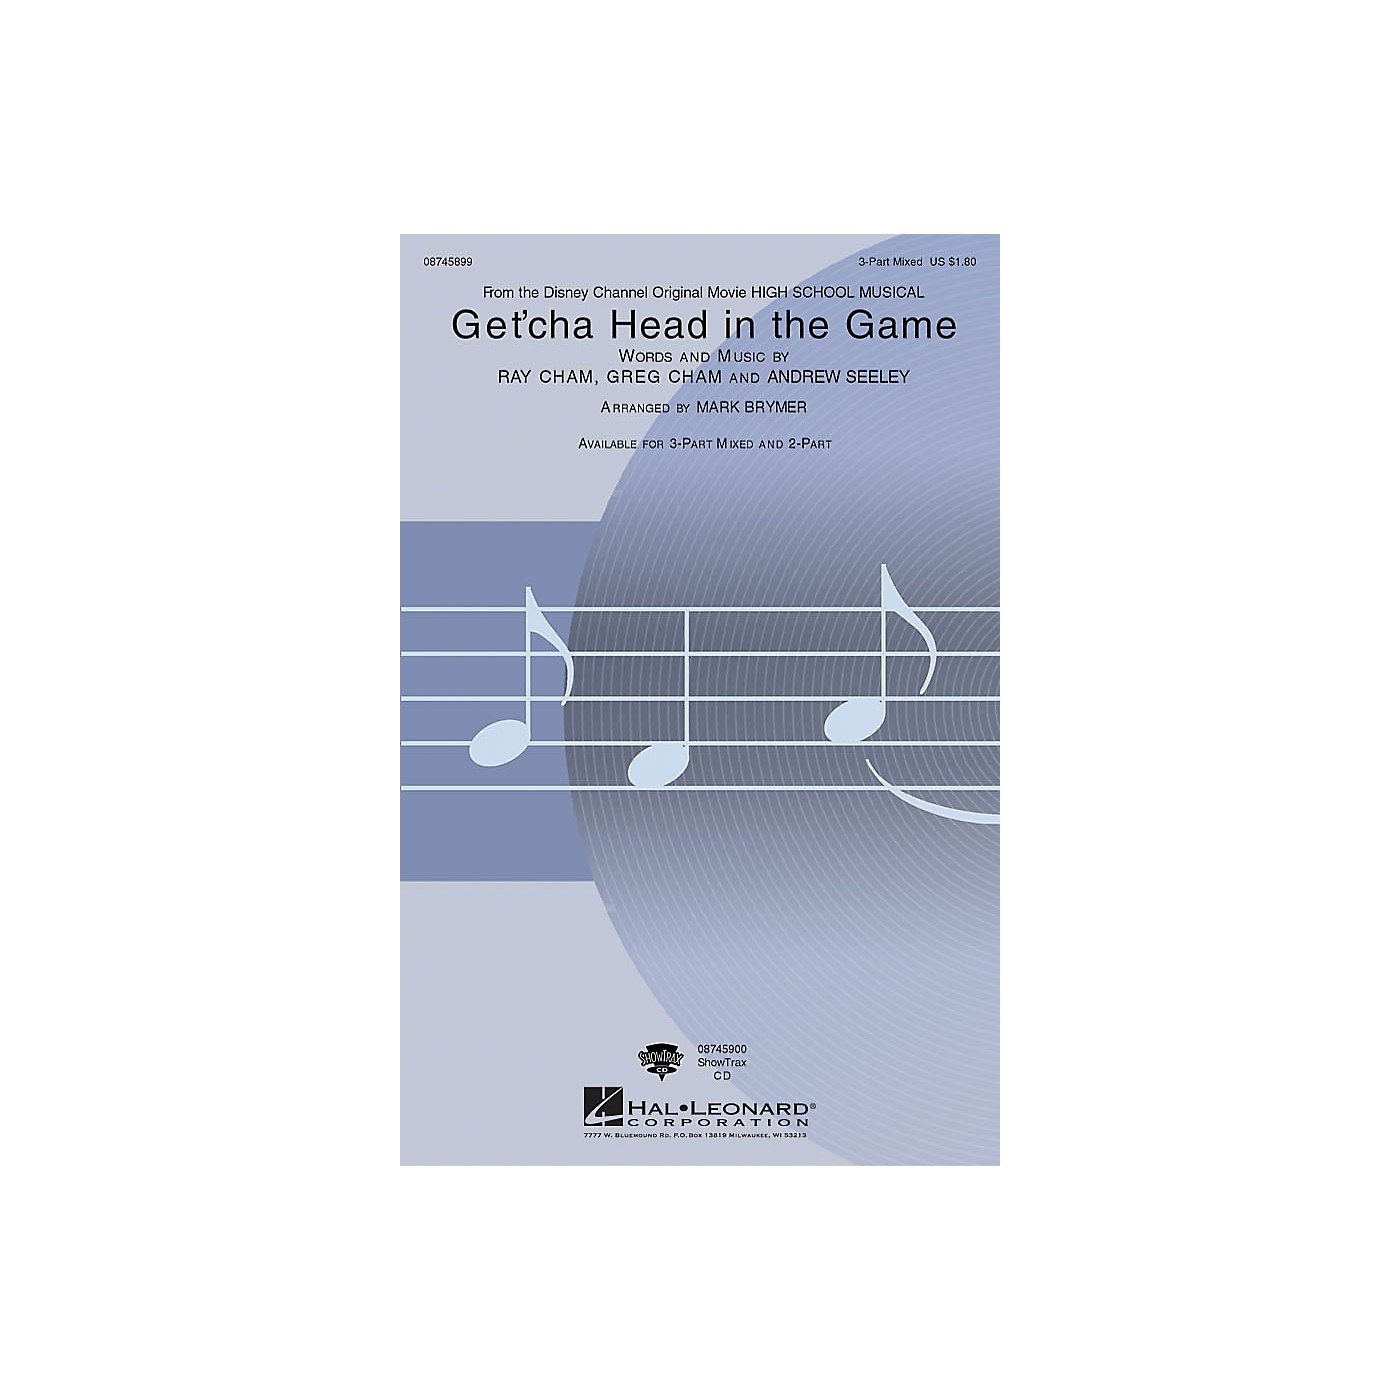 Hal Leonard Get'cha Head in the Game 3-Part Mixed arranged by Mark Brymer thumbnail